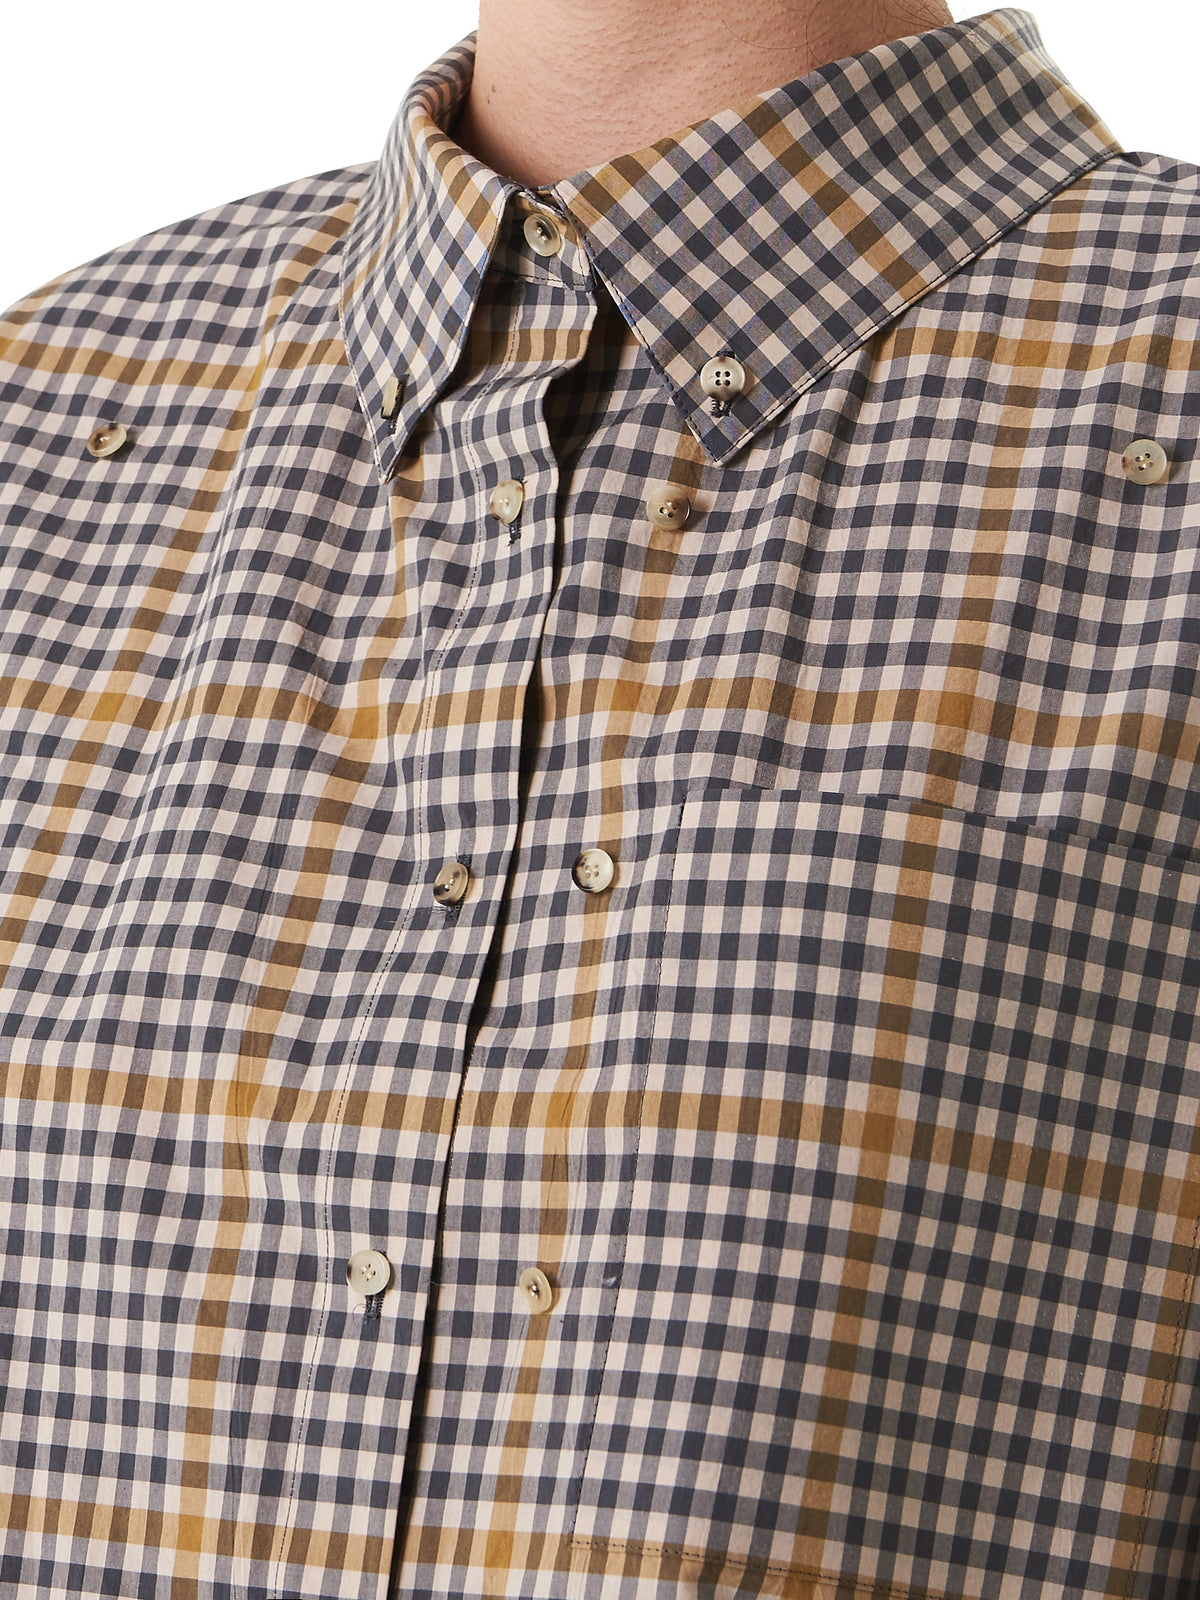 Dual-Buttoned Checkered Shirt (19S83001-LIGHT-BEIGE) - H. Lorenzo